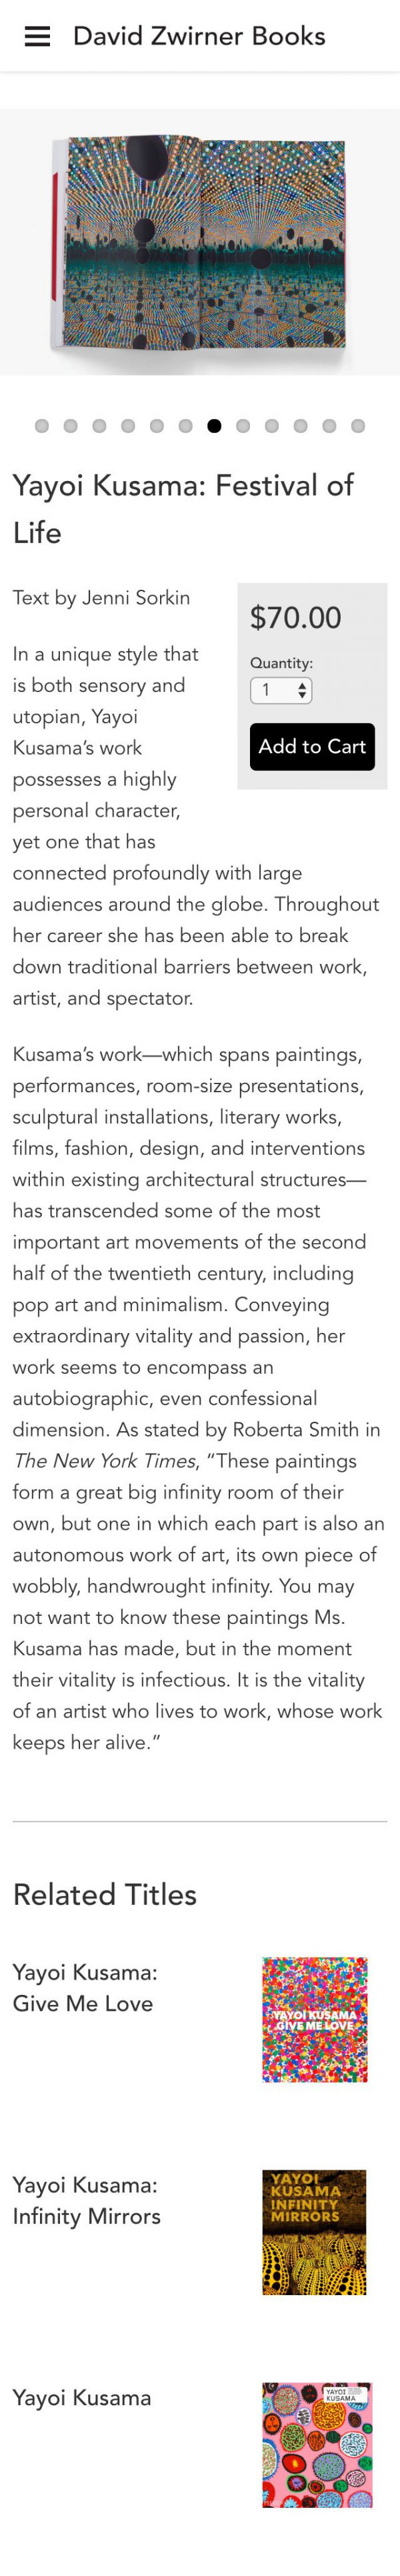 Screenshot of the David Zwirner Books website's books detail page